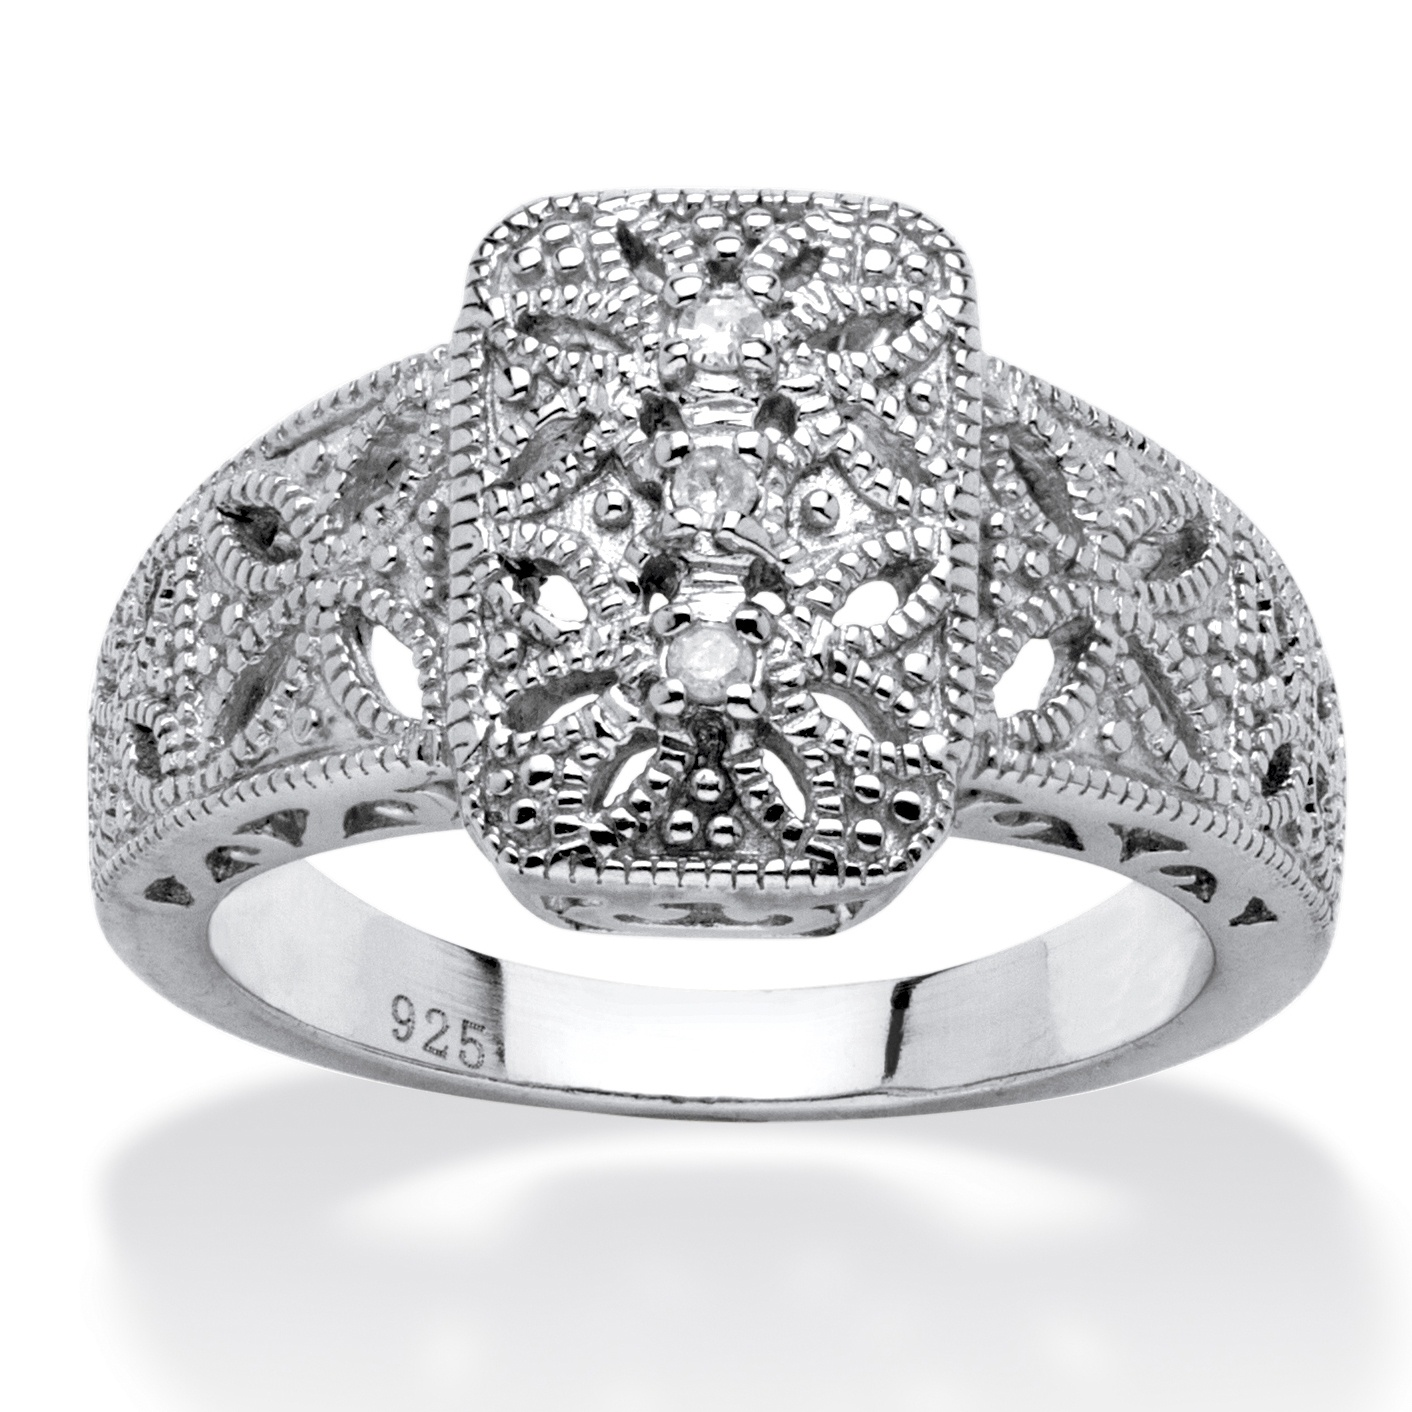 Diamond Accent Vintage-Inspired Platinum over Sterling Silver Filigree Ring